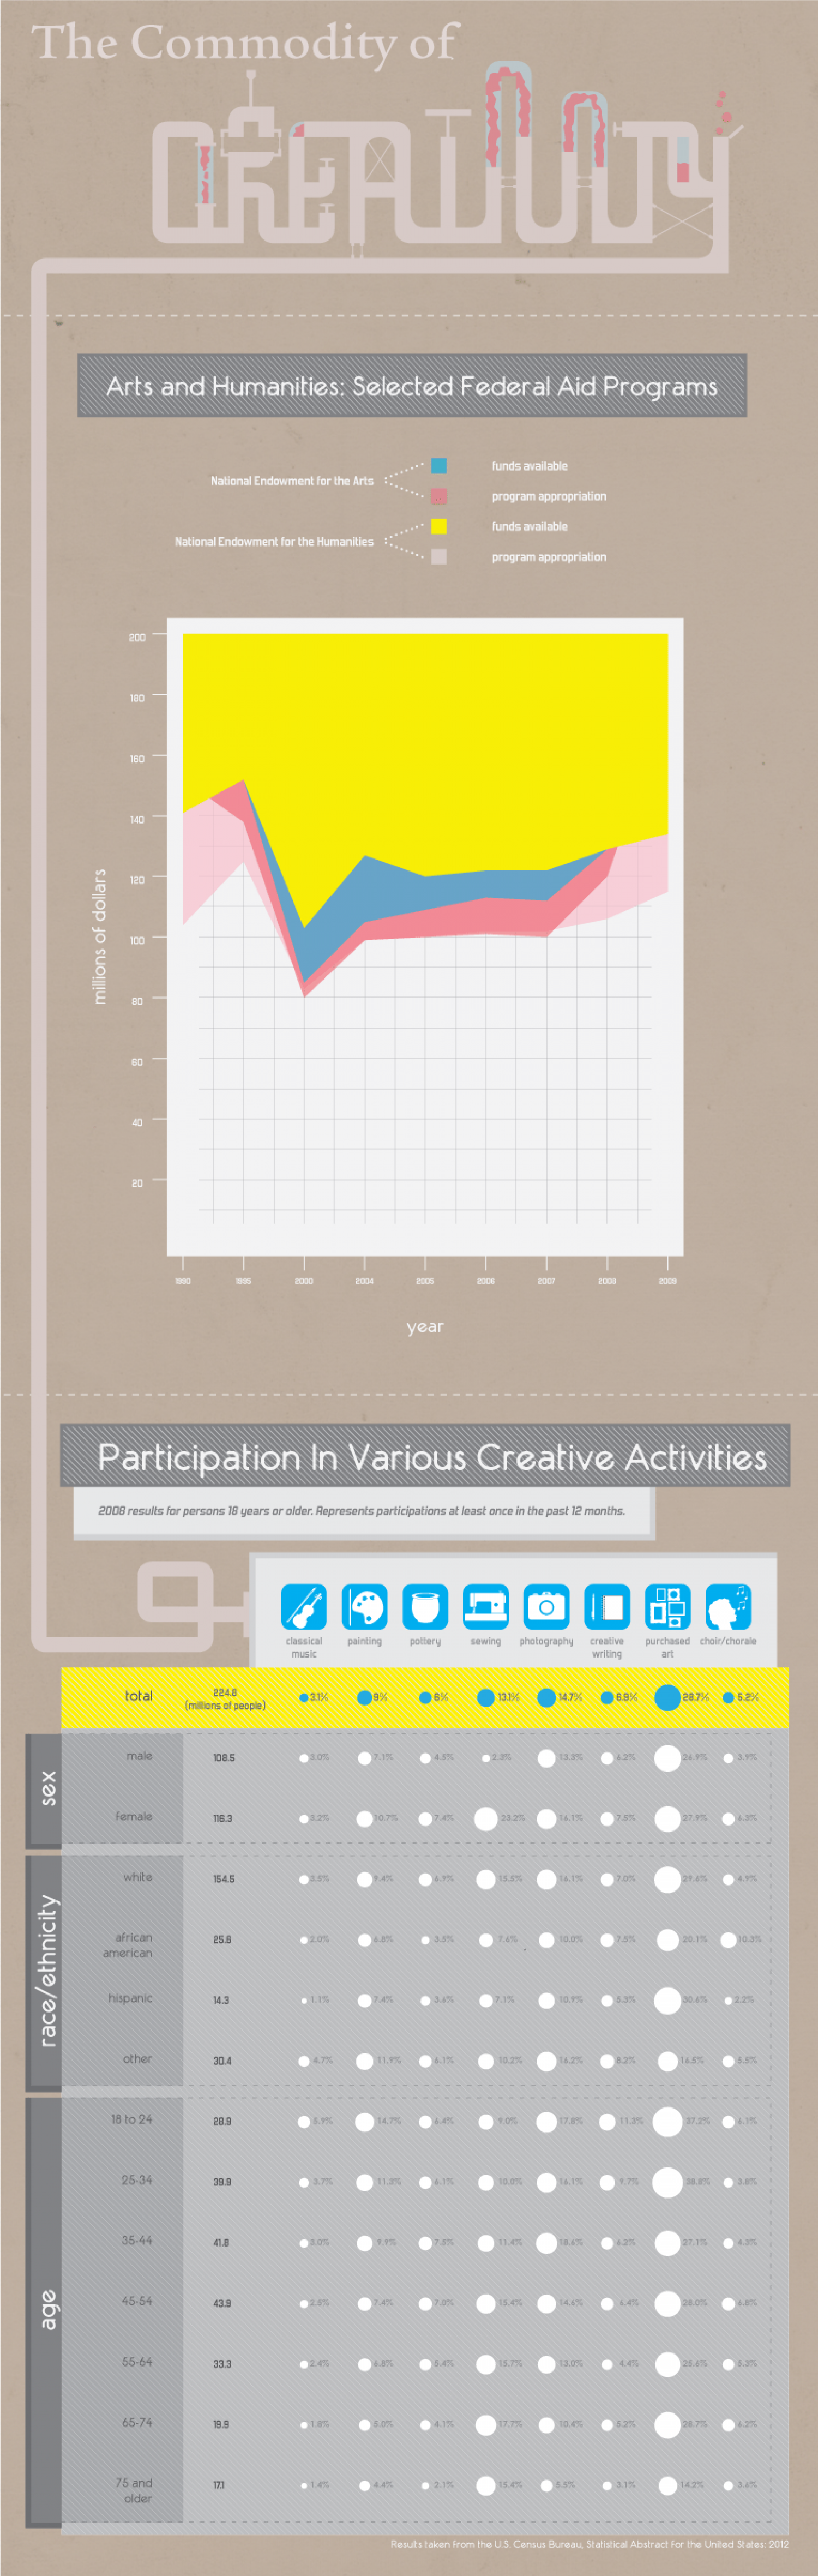 Commodity of Creativity  Infographic